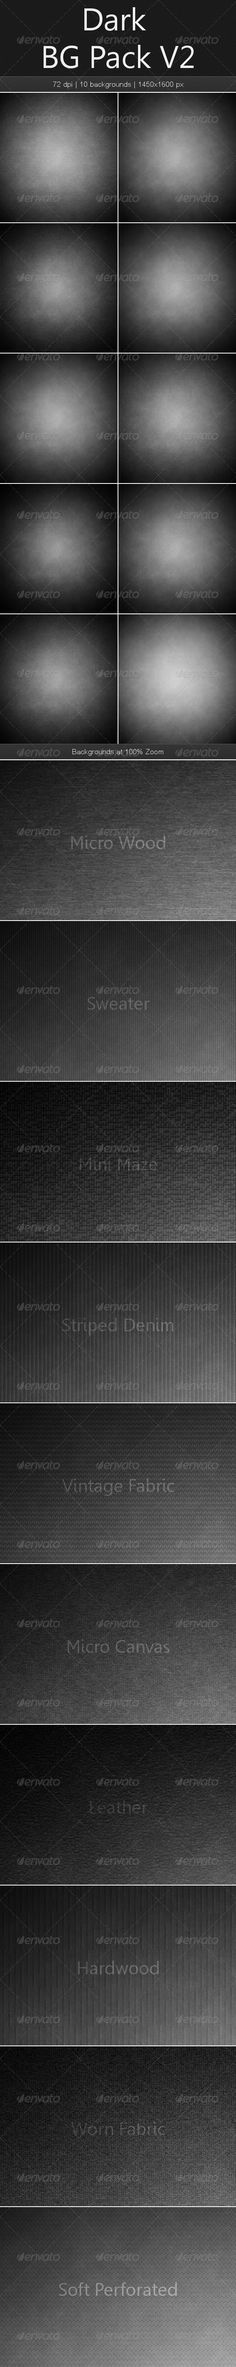 Dark BG Pack V2 by graphicmind This pack contains 10 dark backgrounds with center lighting. 10JPGfiles included (14501600 pixels at 72 dpi). Backgrounds include